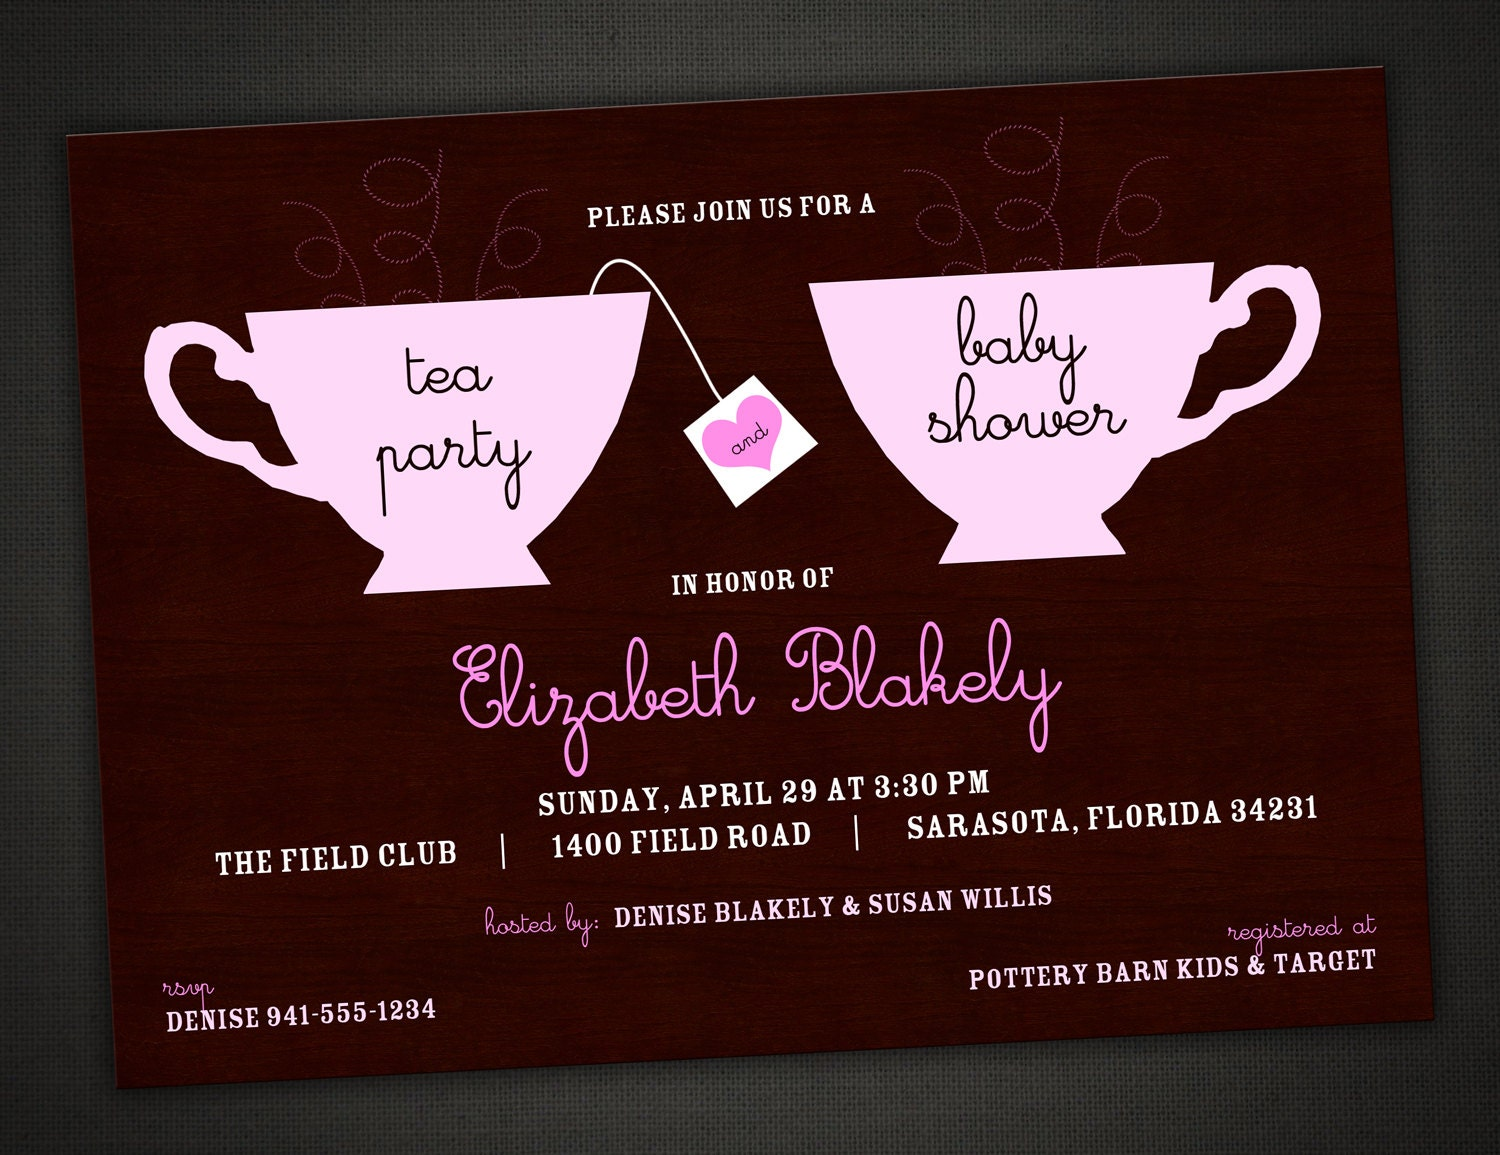 tea party baby shower invitation personalized by idesignthat